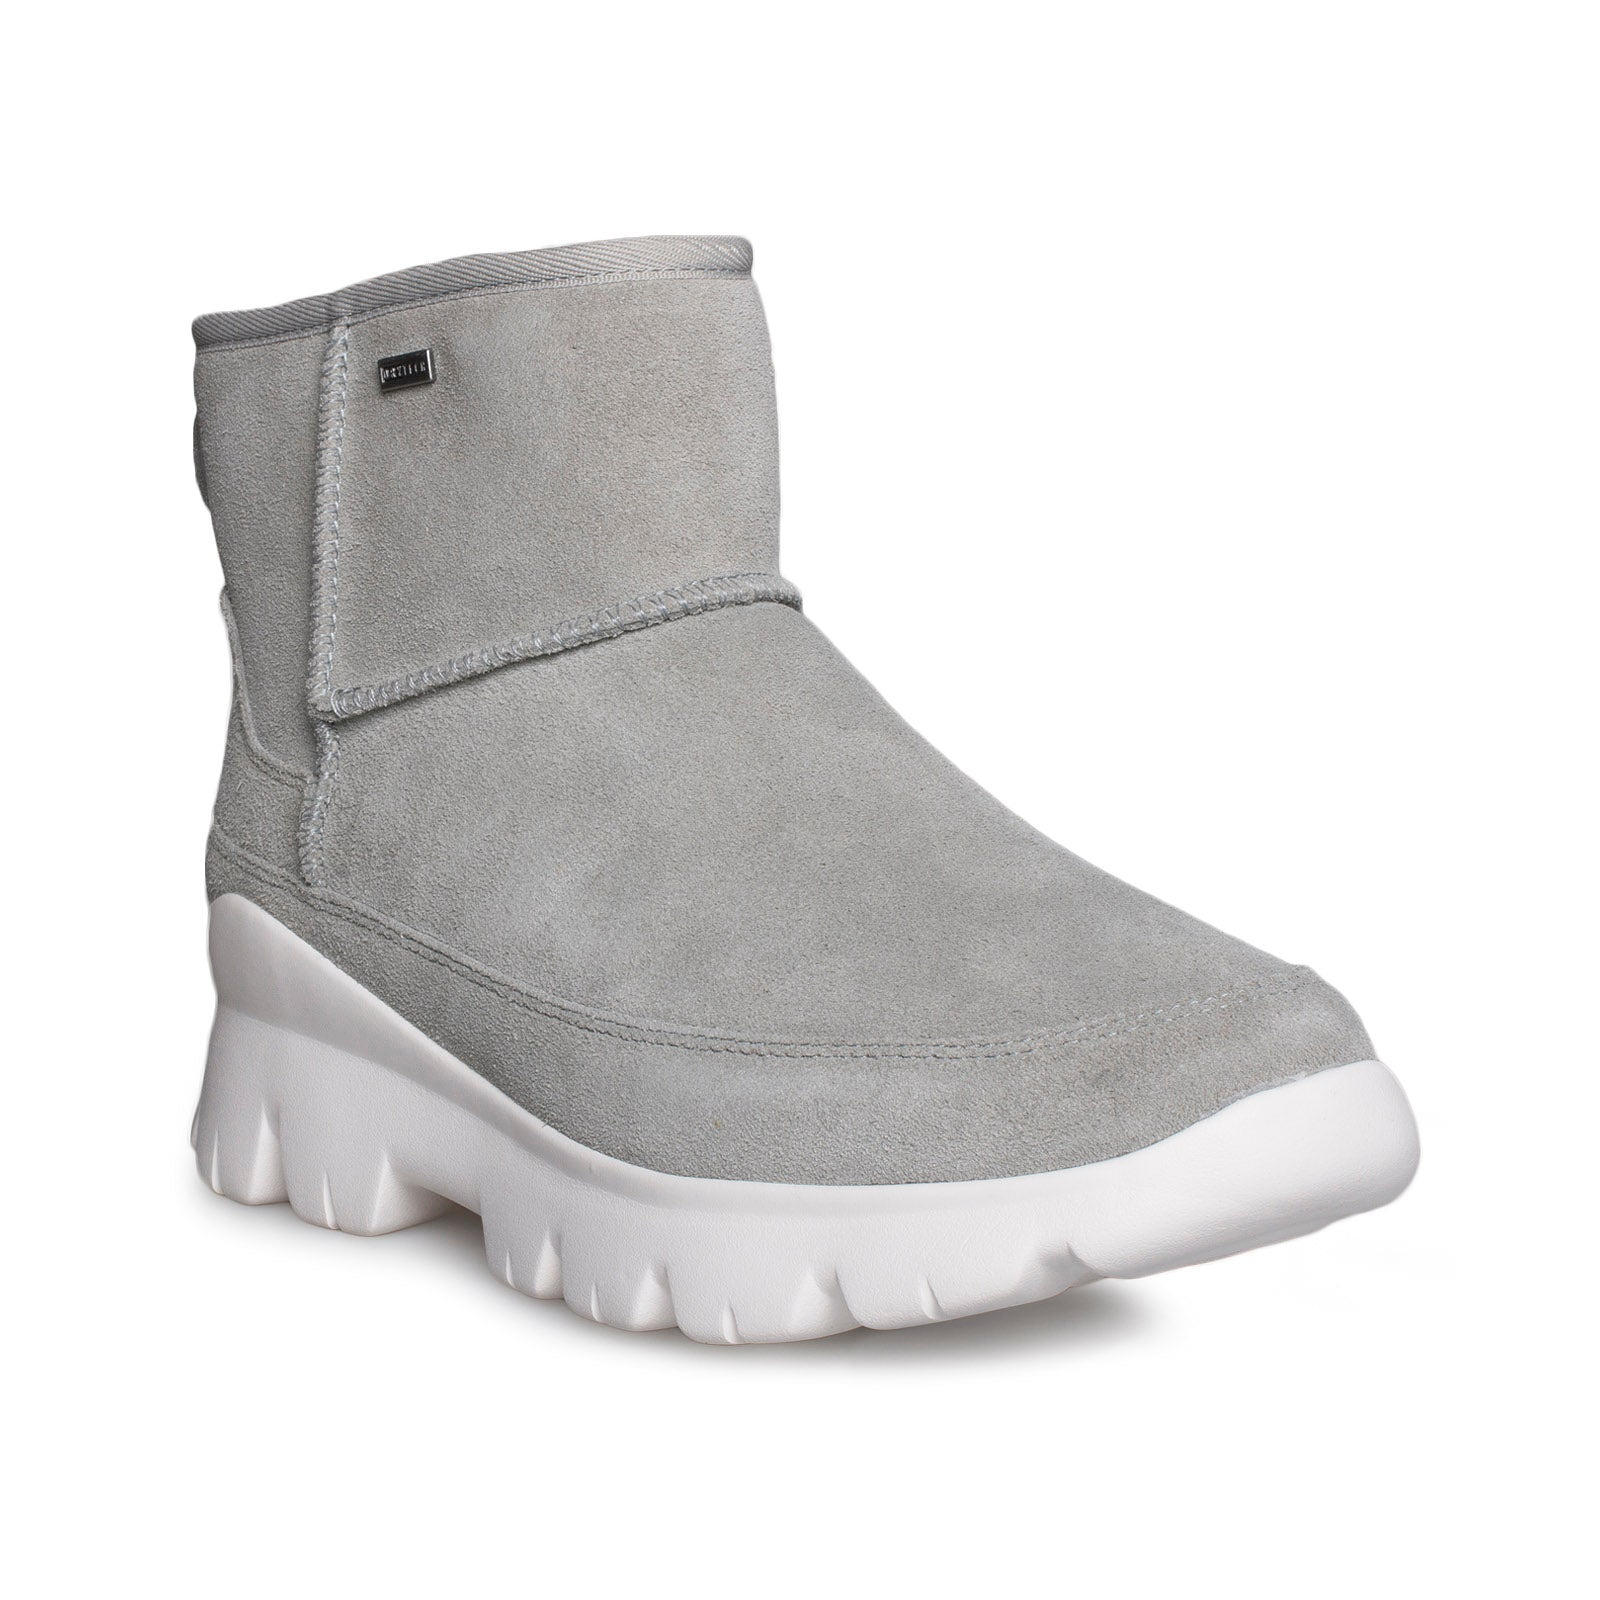 81f73a80f70 Women's Sneakers - MyCozyBoots